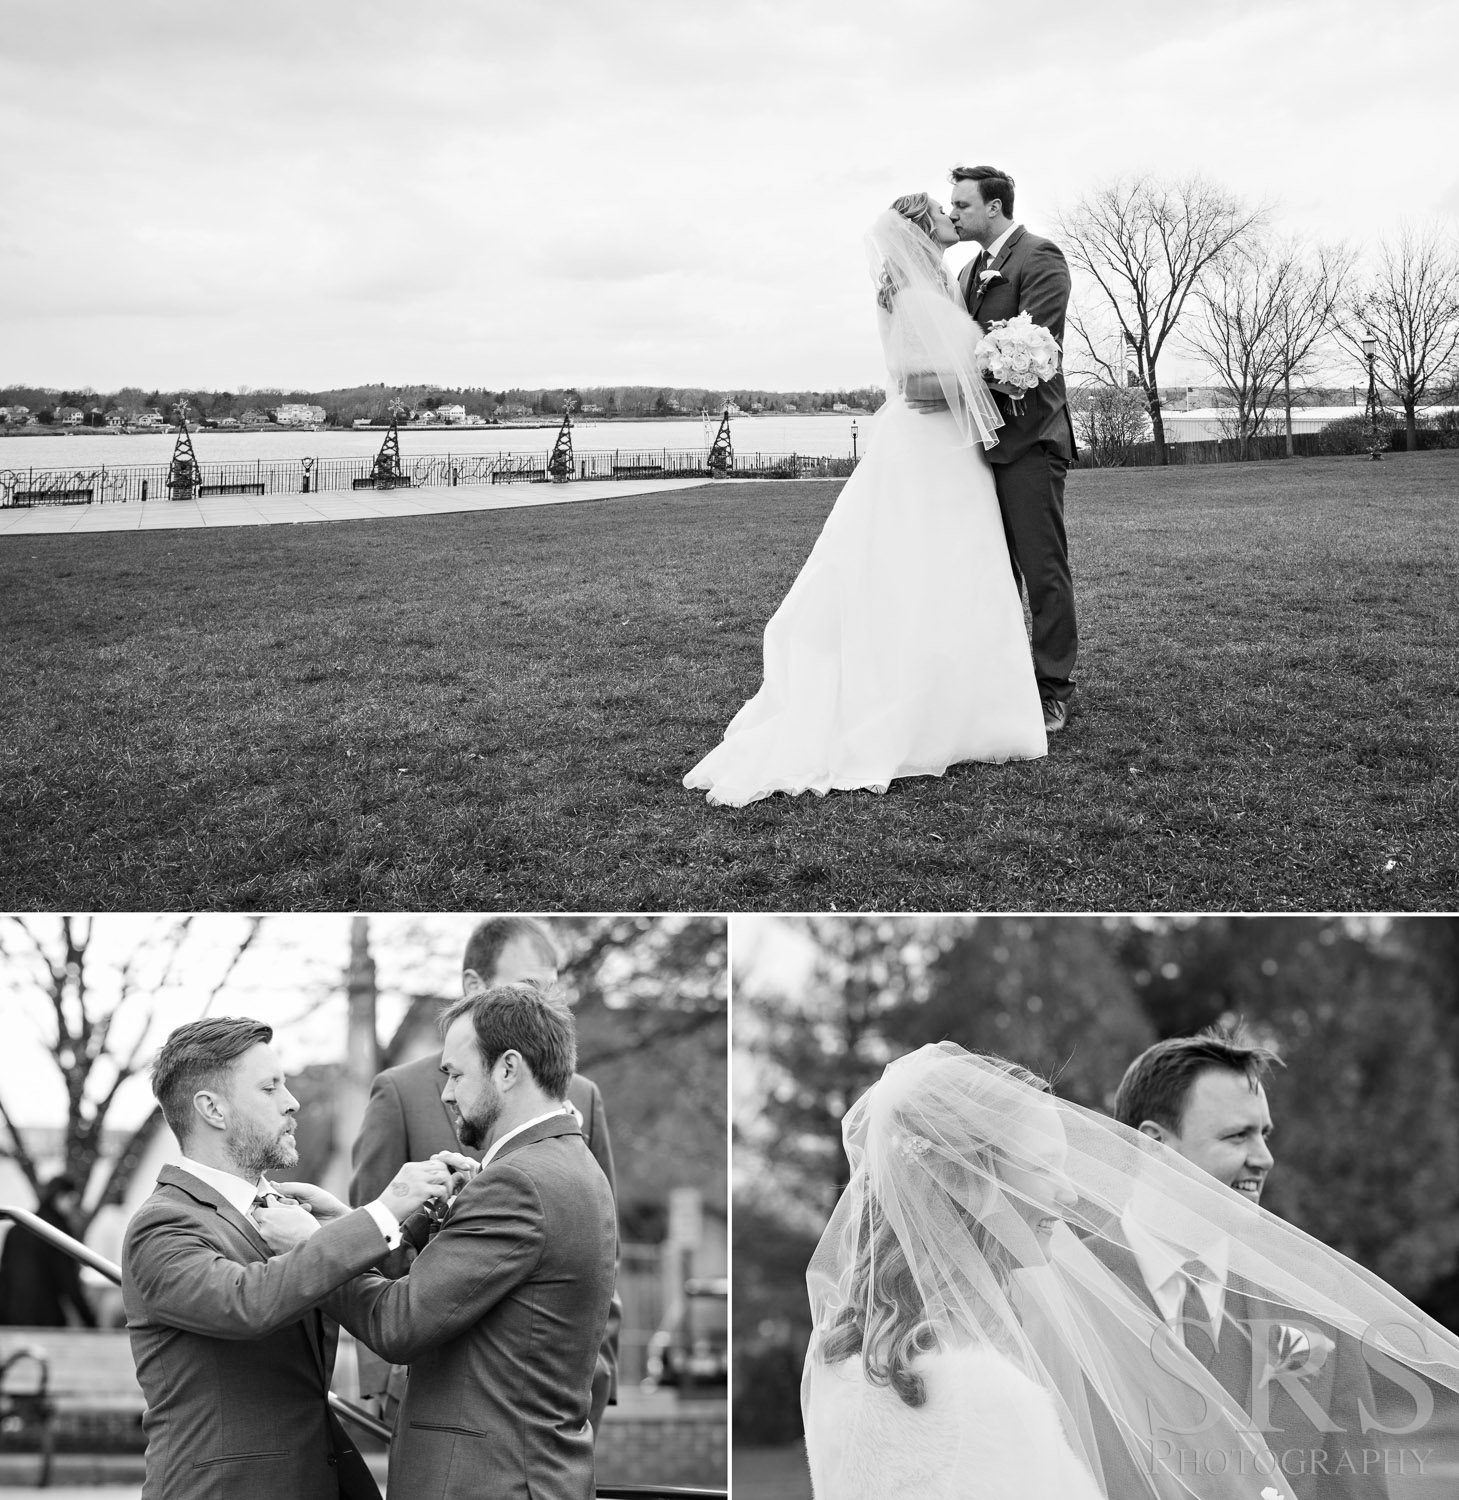 07_srs_photography_sara_stadtmiller_asbury_park_wedding_photography_nj_wedding_photographer_monmouth_county_wedding_photographer_riverside_gardens_red_bank_wedding